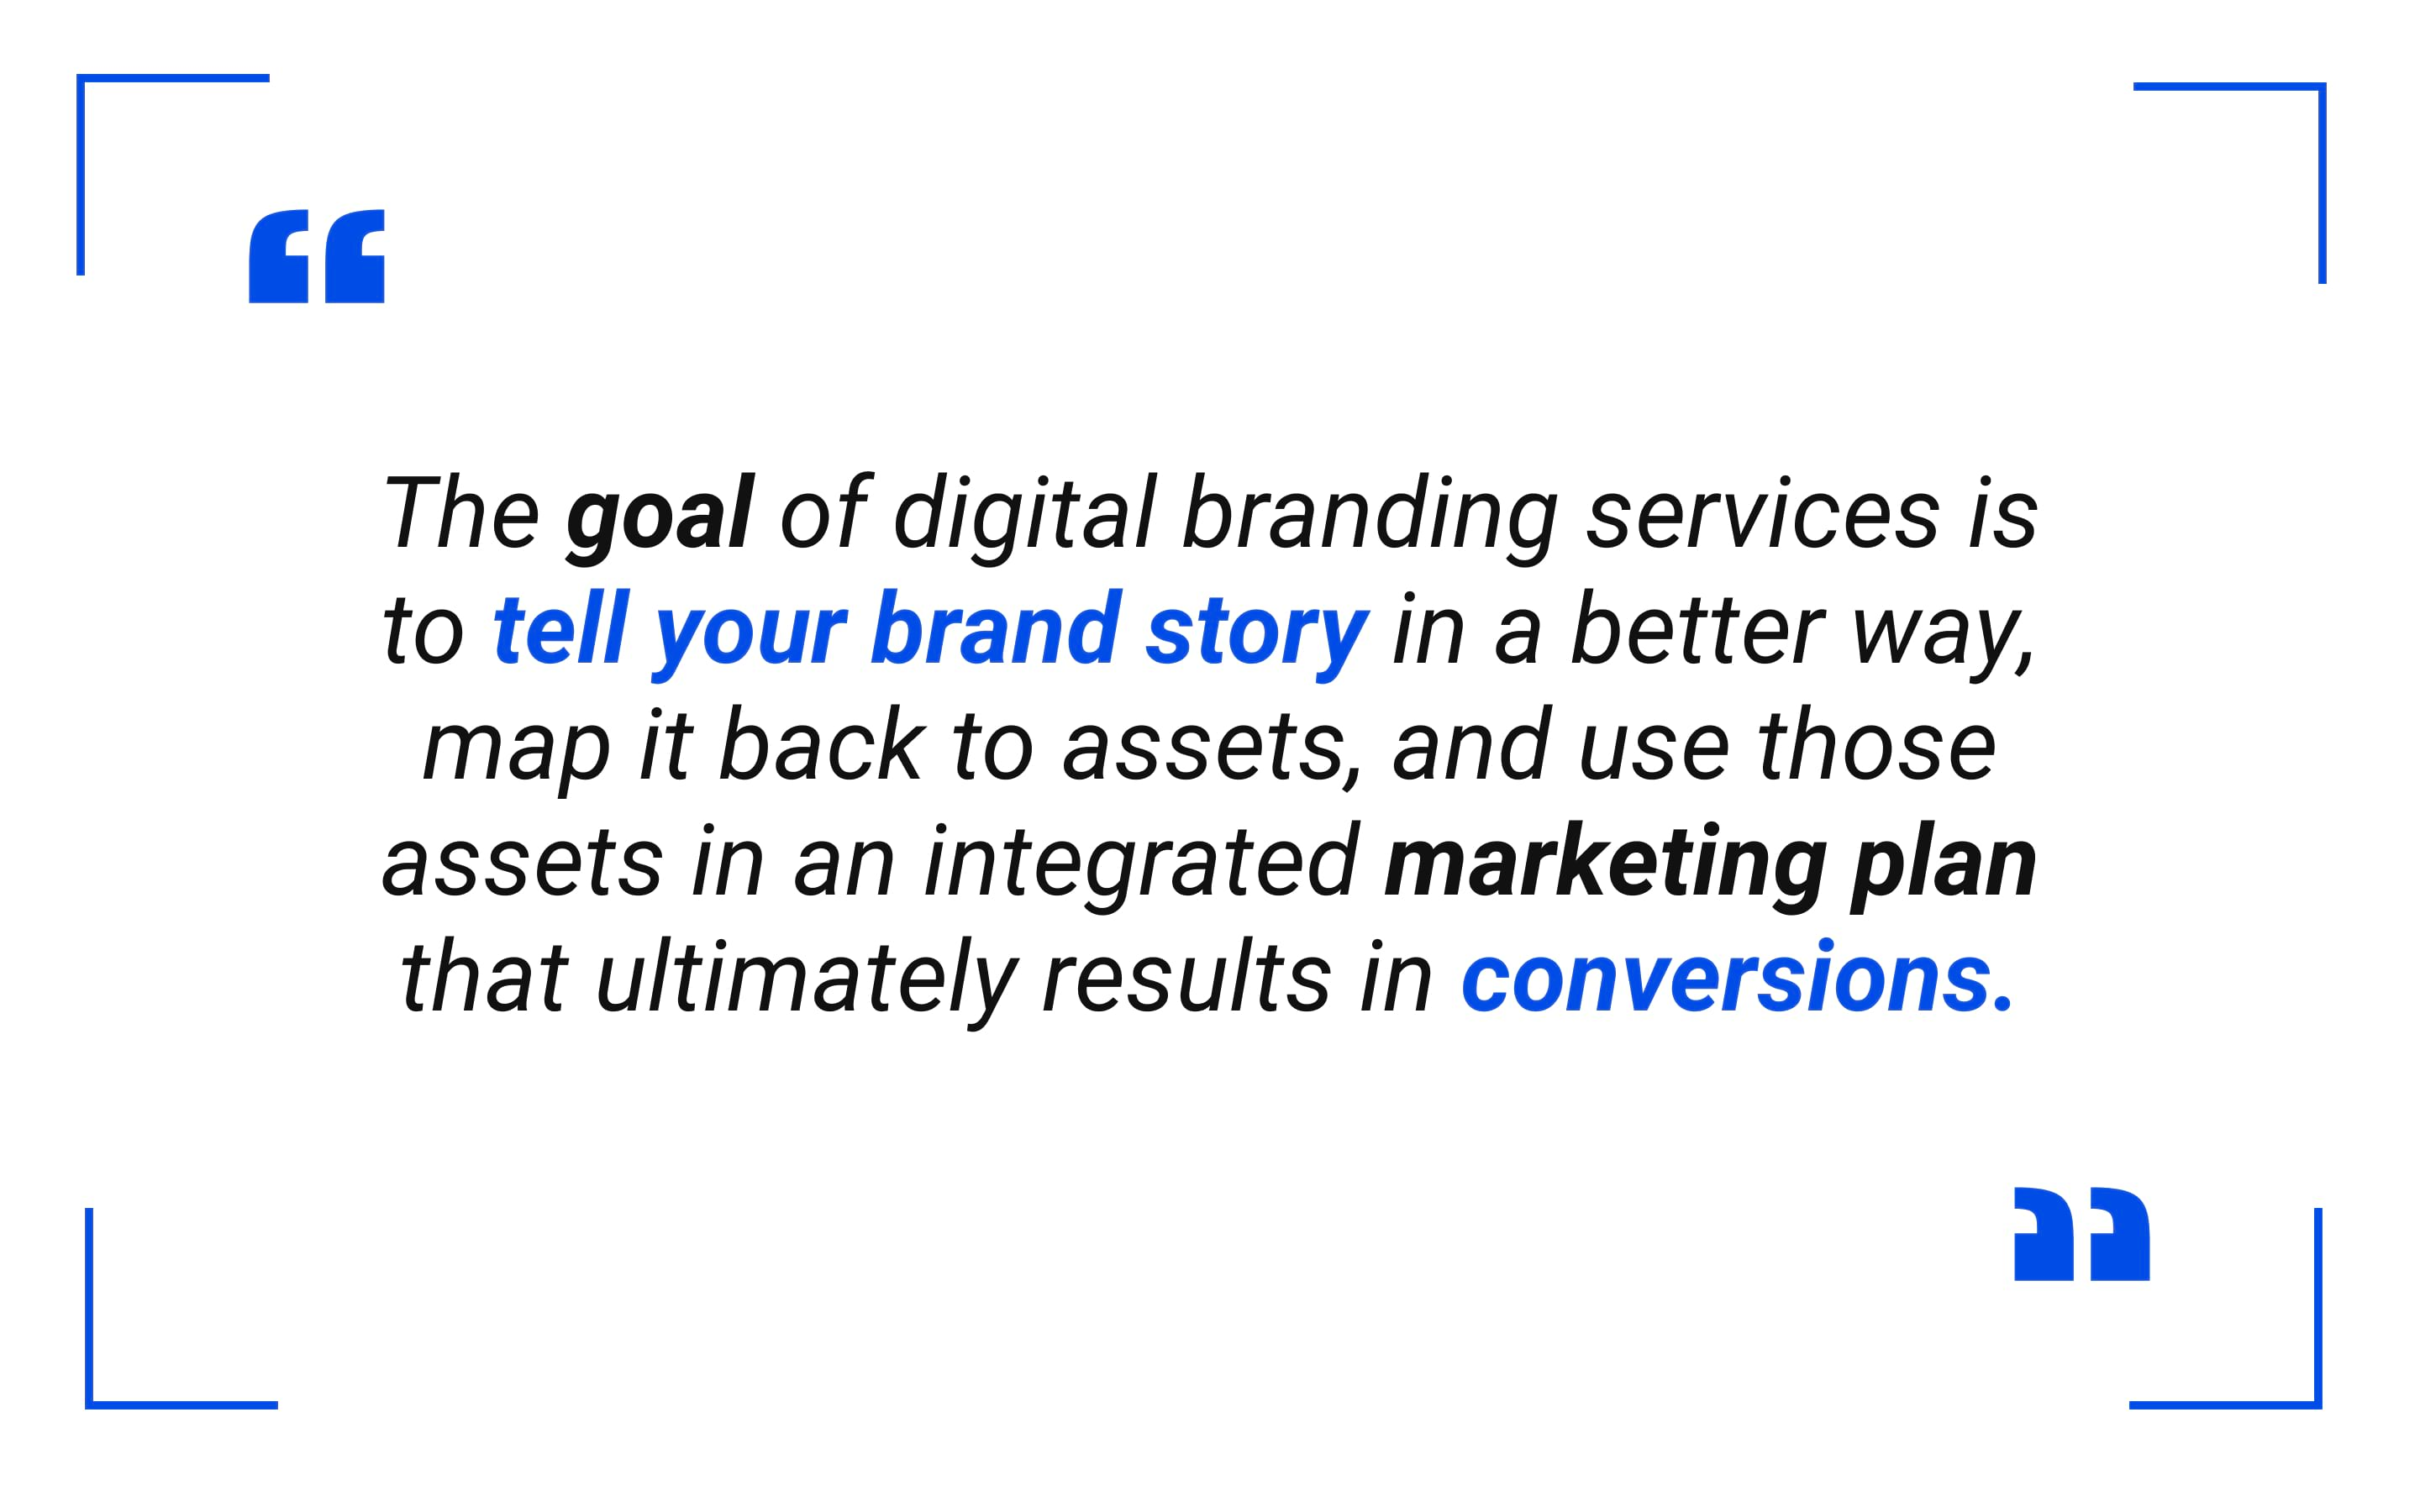 The goal of digital branding services is to tell your brand story in a better way